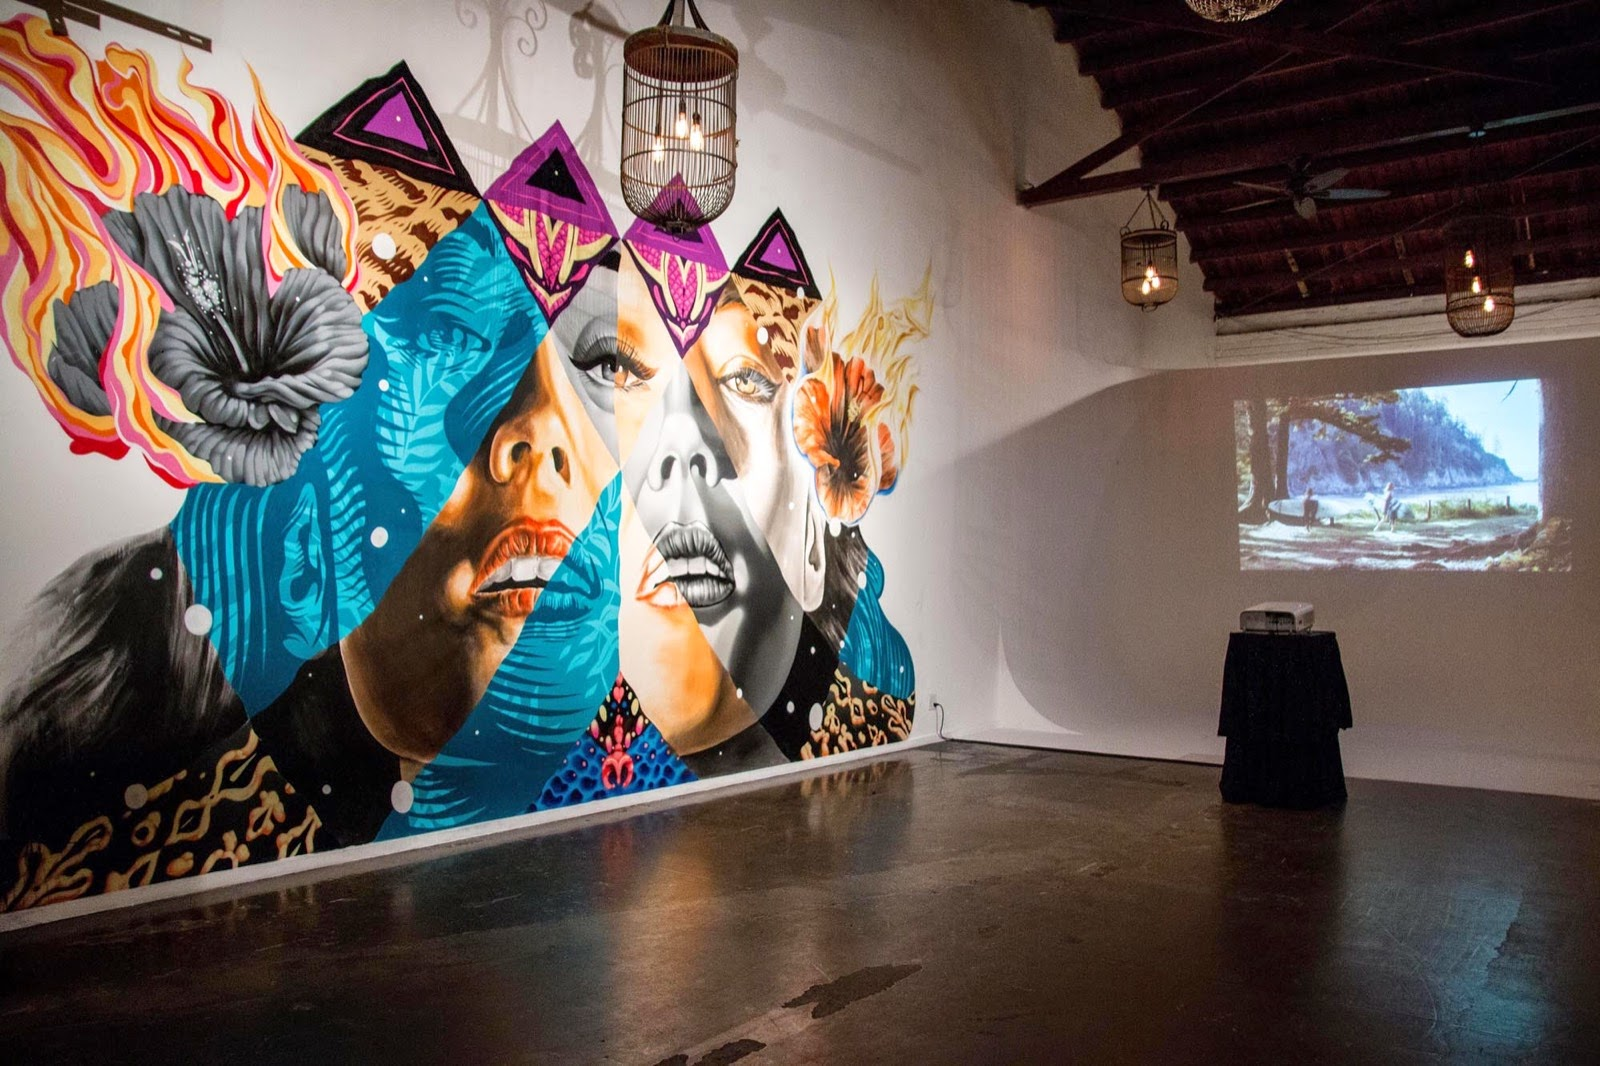 Kamea Hadar and Tristan Eaton uncover a new indoor collaboration in Los Angeles, USA (9)